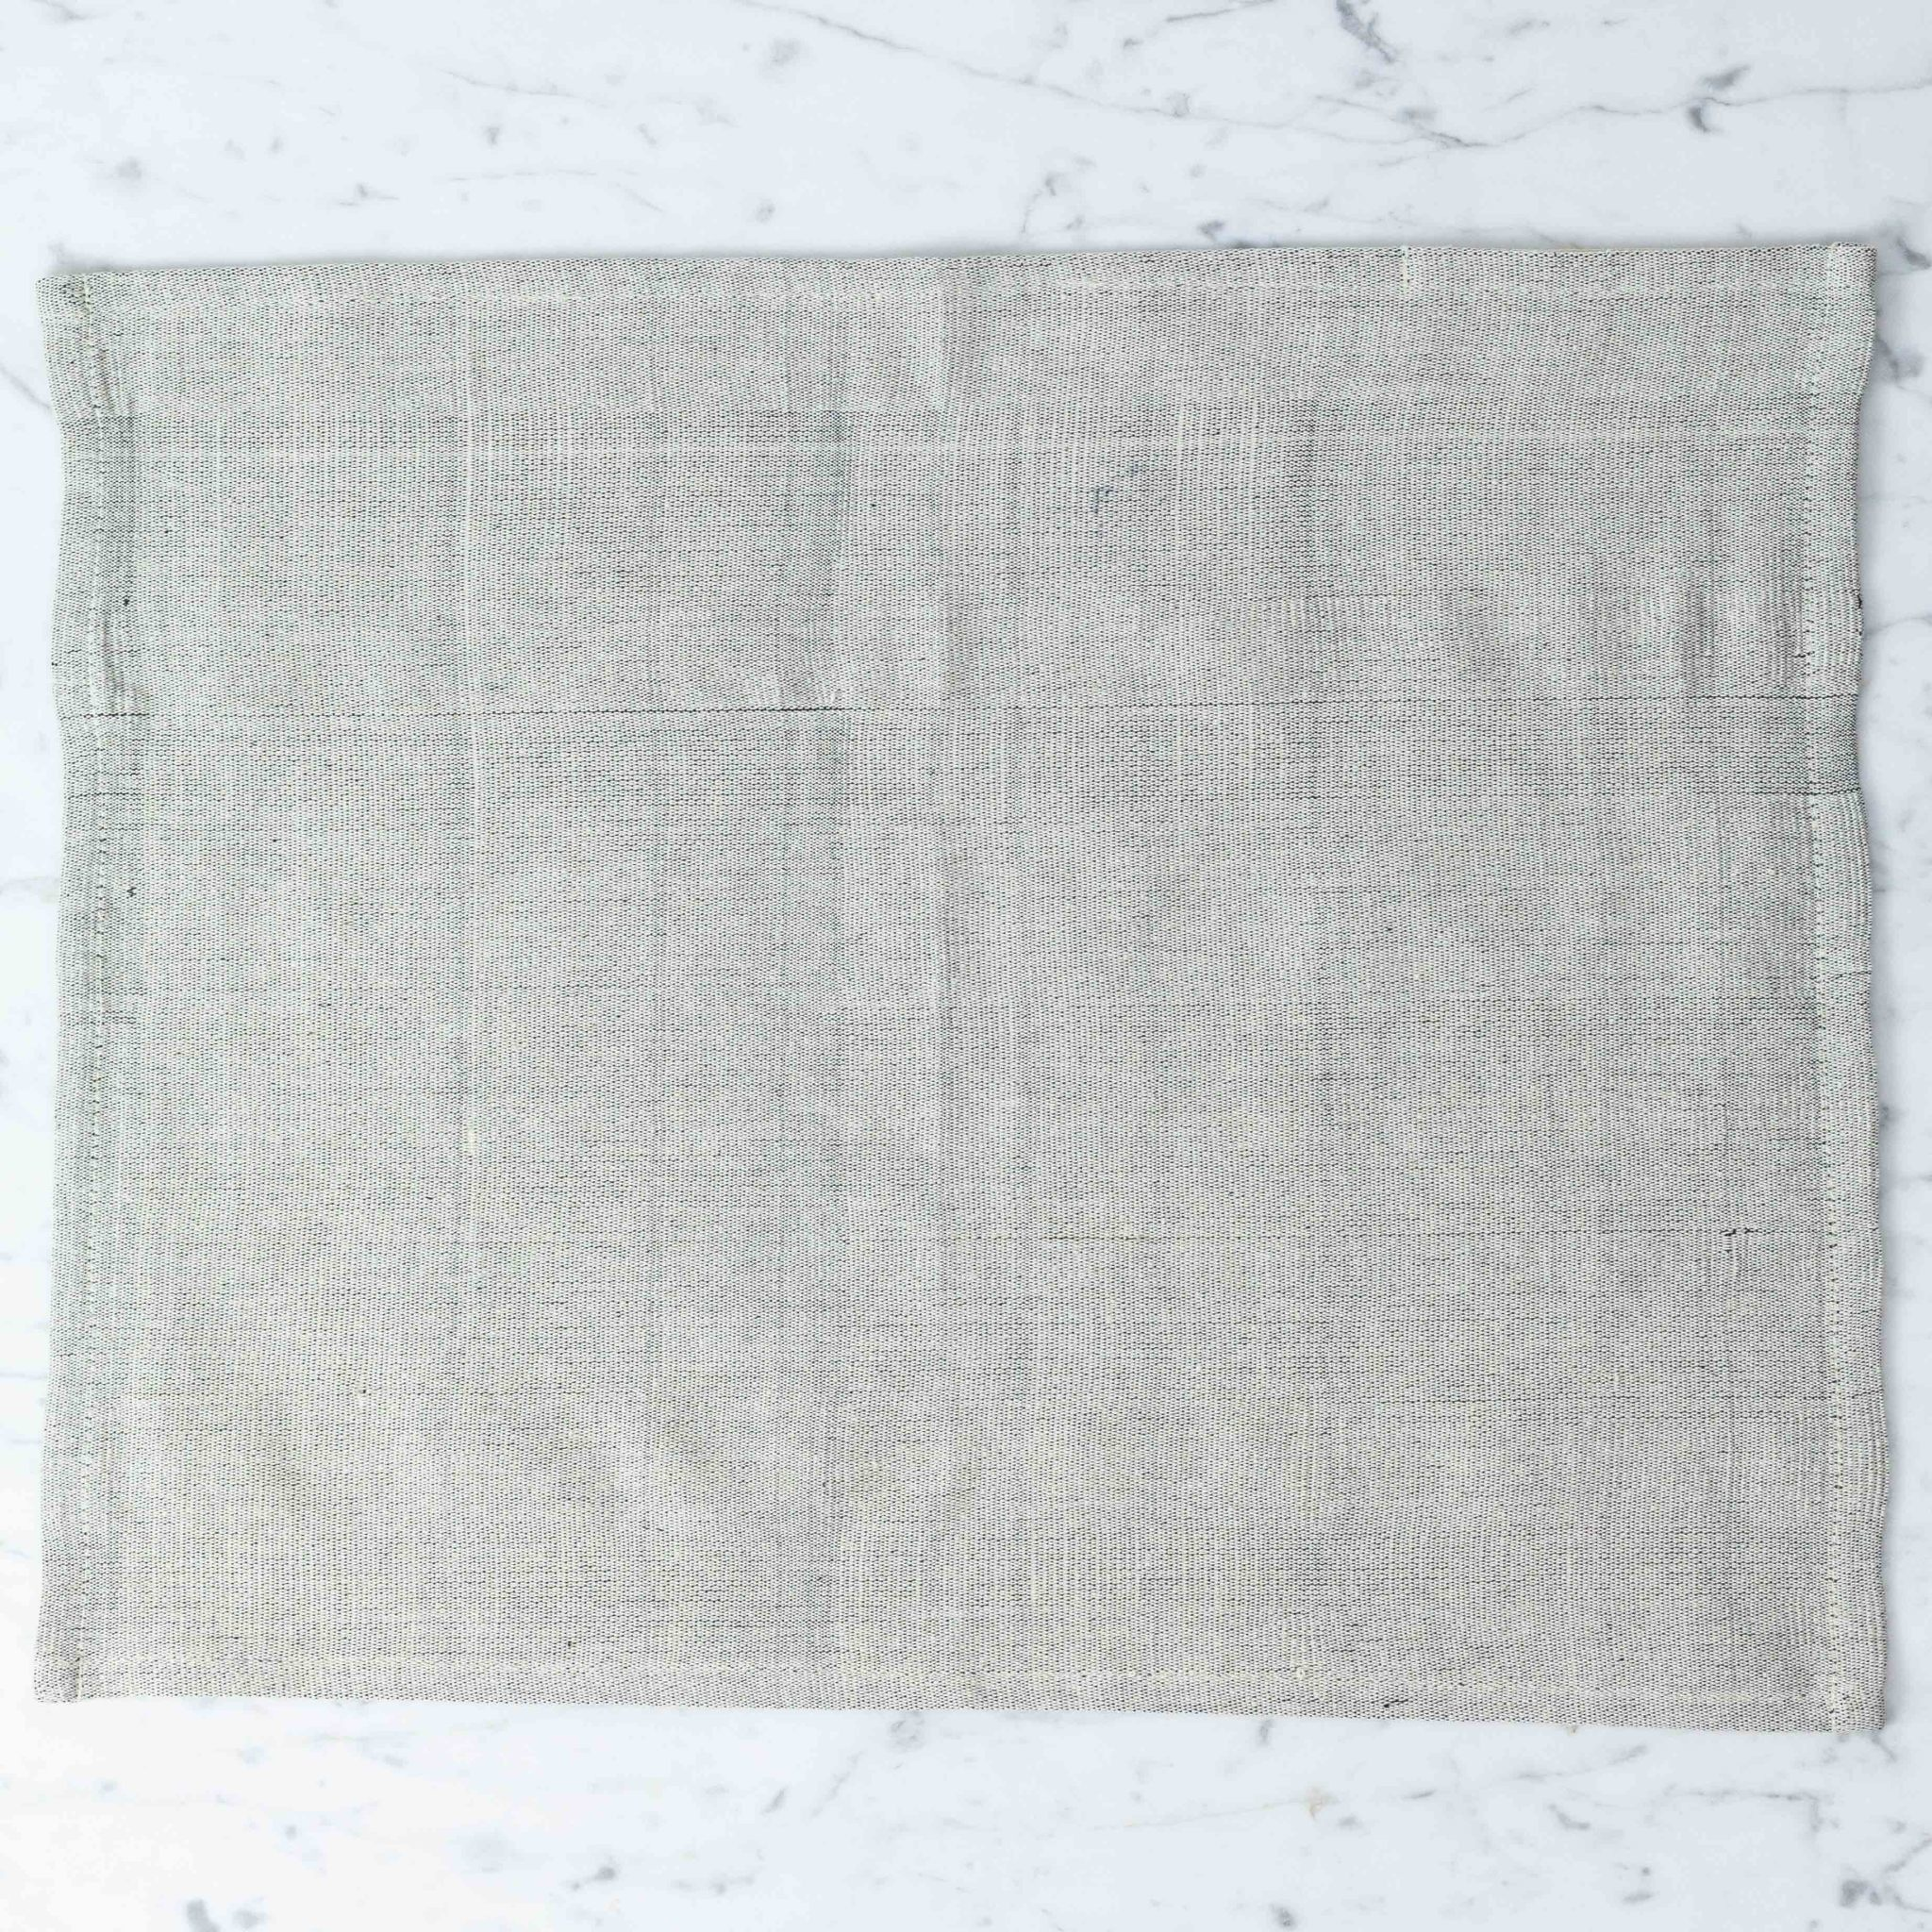 TENSIRA Handwoven Cotton Placemat - Pale Grey - 14 x 18 inch